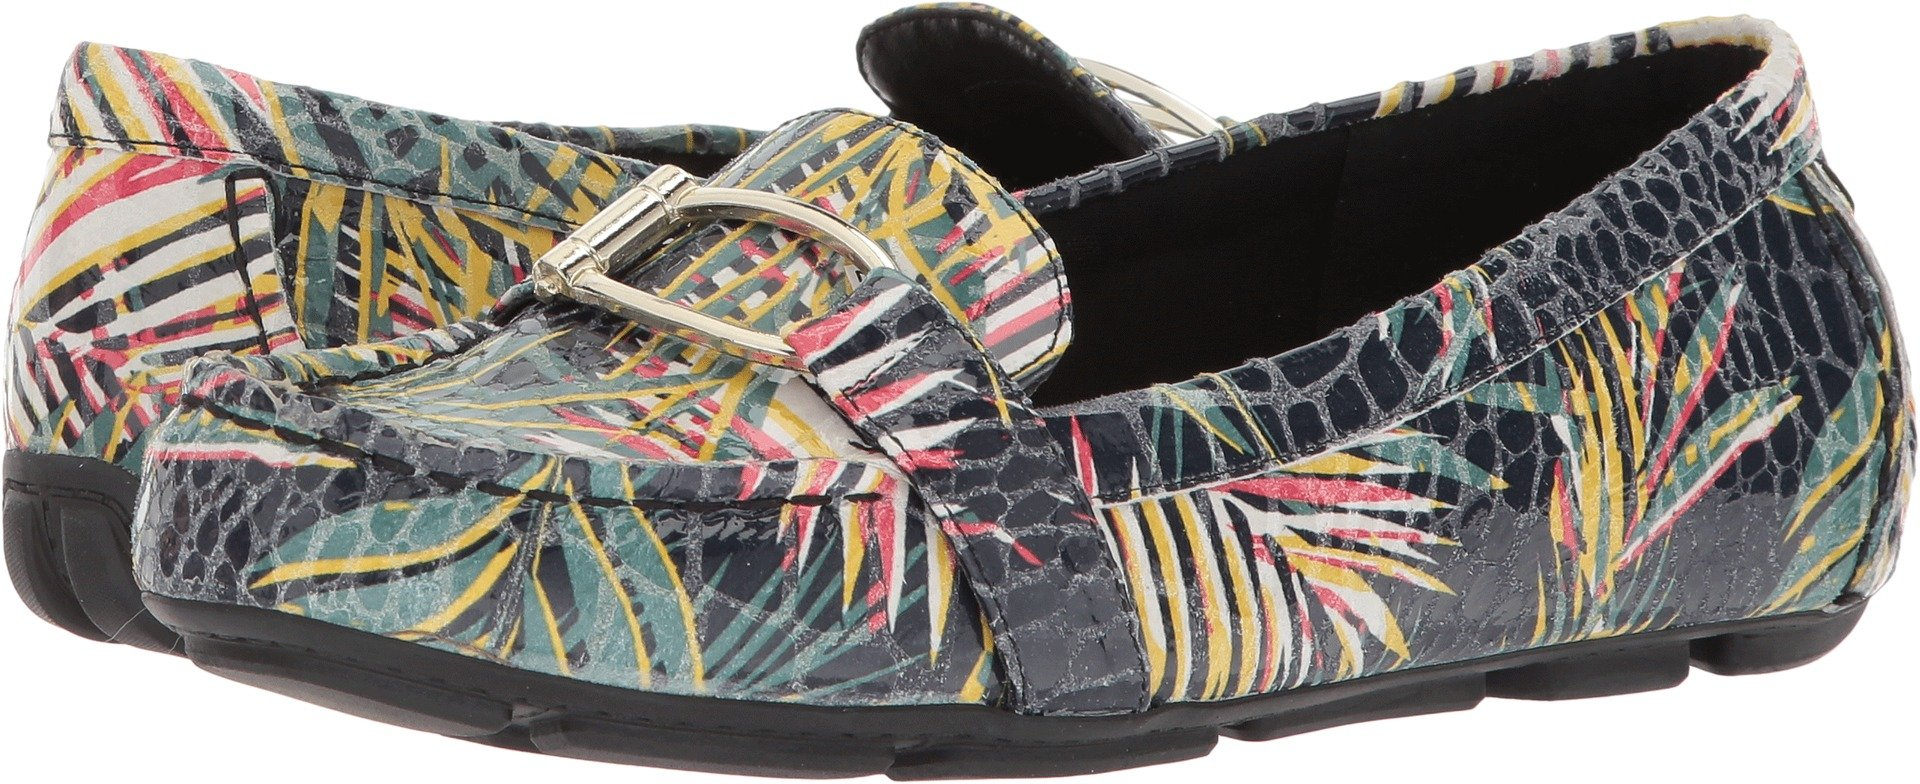 Anne Klein Women's Petra Driving Style Loafer, Black/Multi rp, 7.5 M US